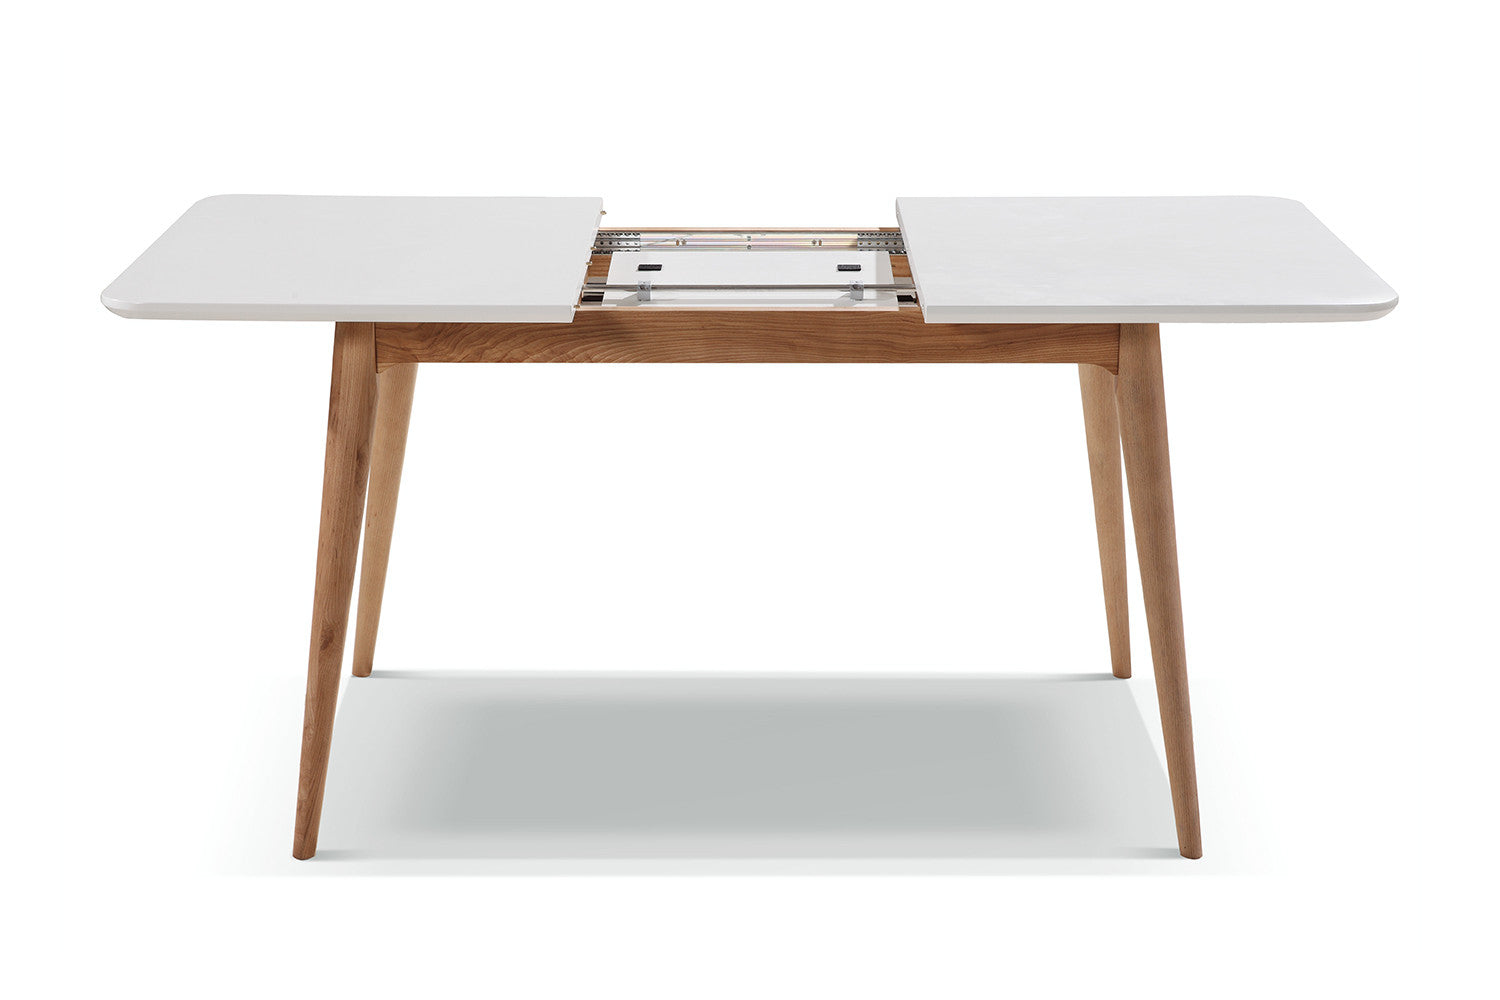 Table de cuisine extensible vintage breggia dewarens - Table cuisine rallonge ...